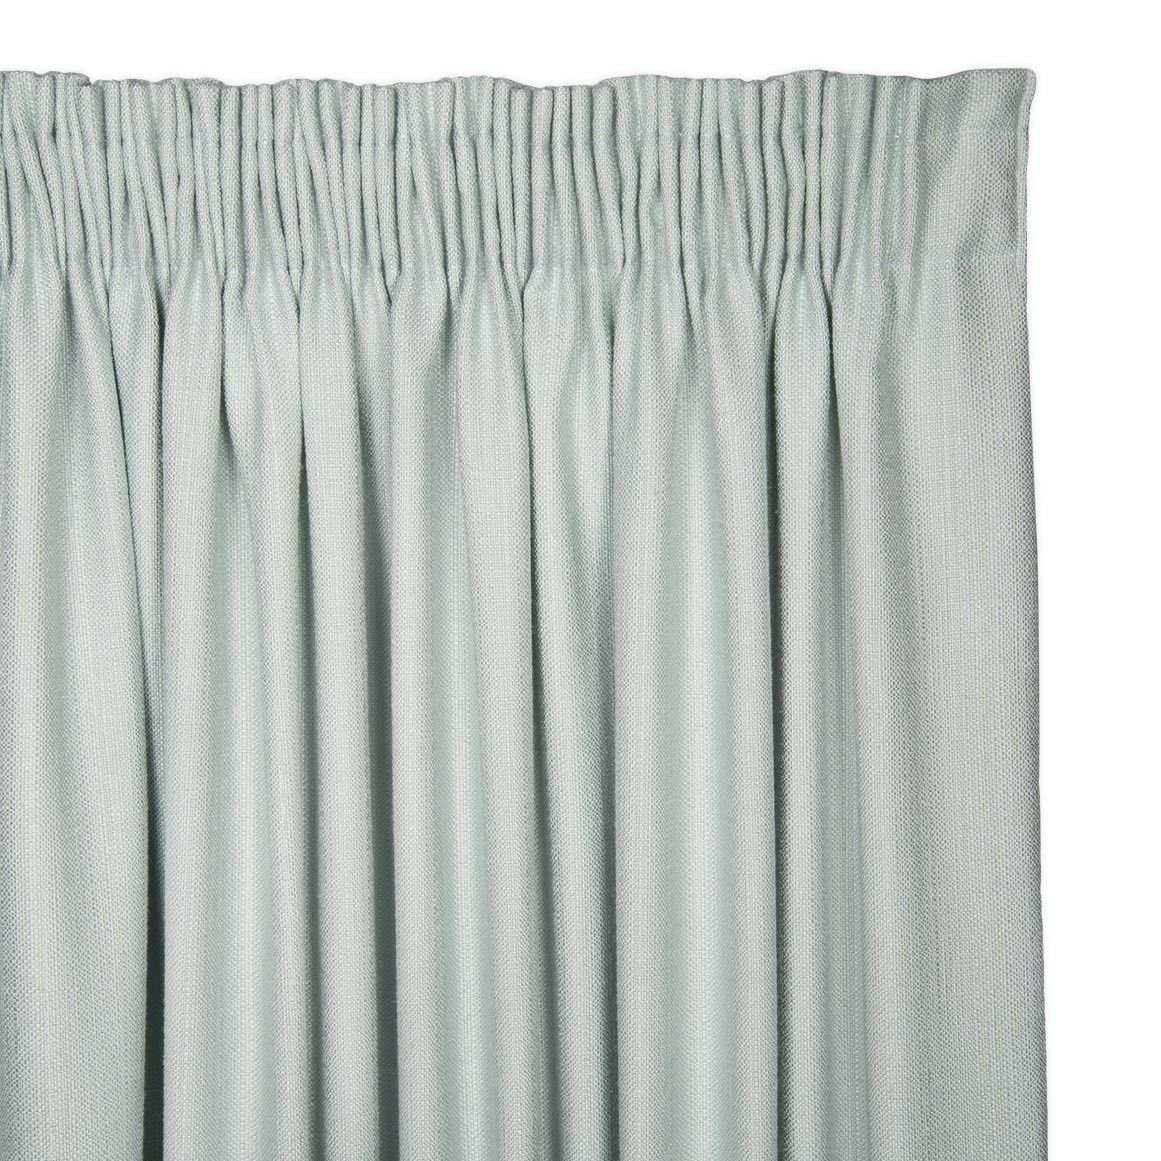 Woven Lined Taped Curtains Curtains Basic Shower Curtain Woven